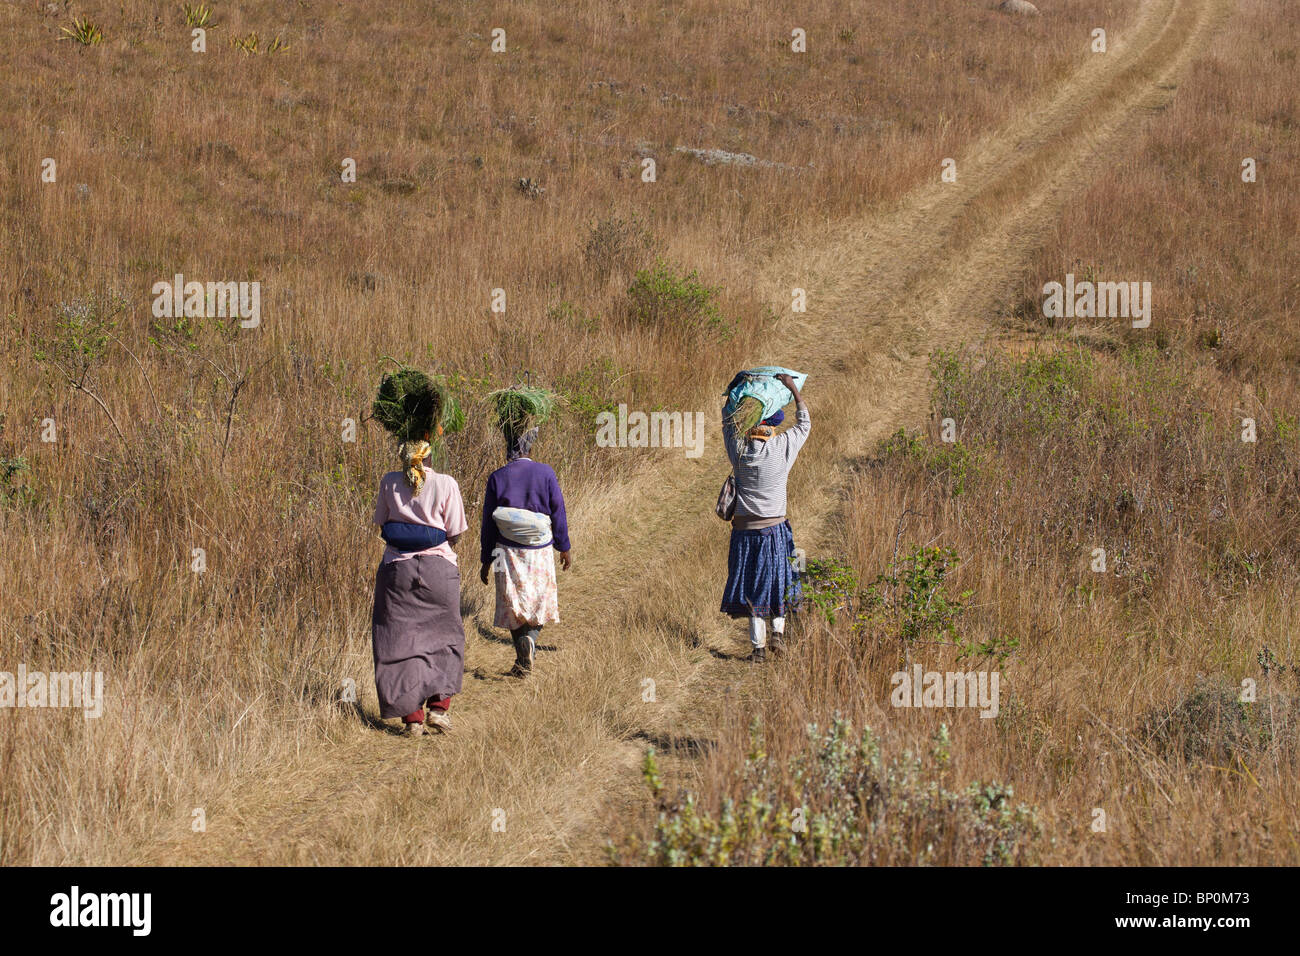 Women Carrying Hay on their Heads, Malolotje Reserve, Swaziland - Stock Image